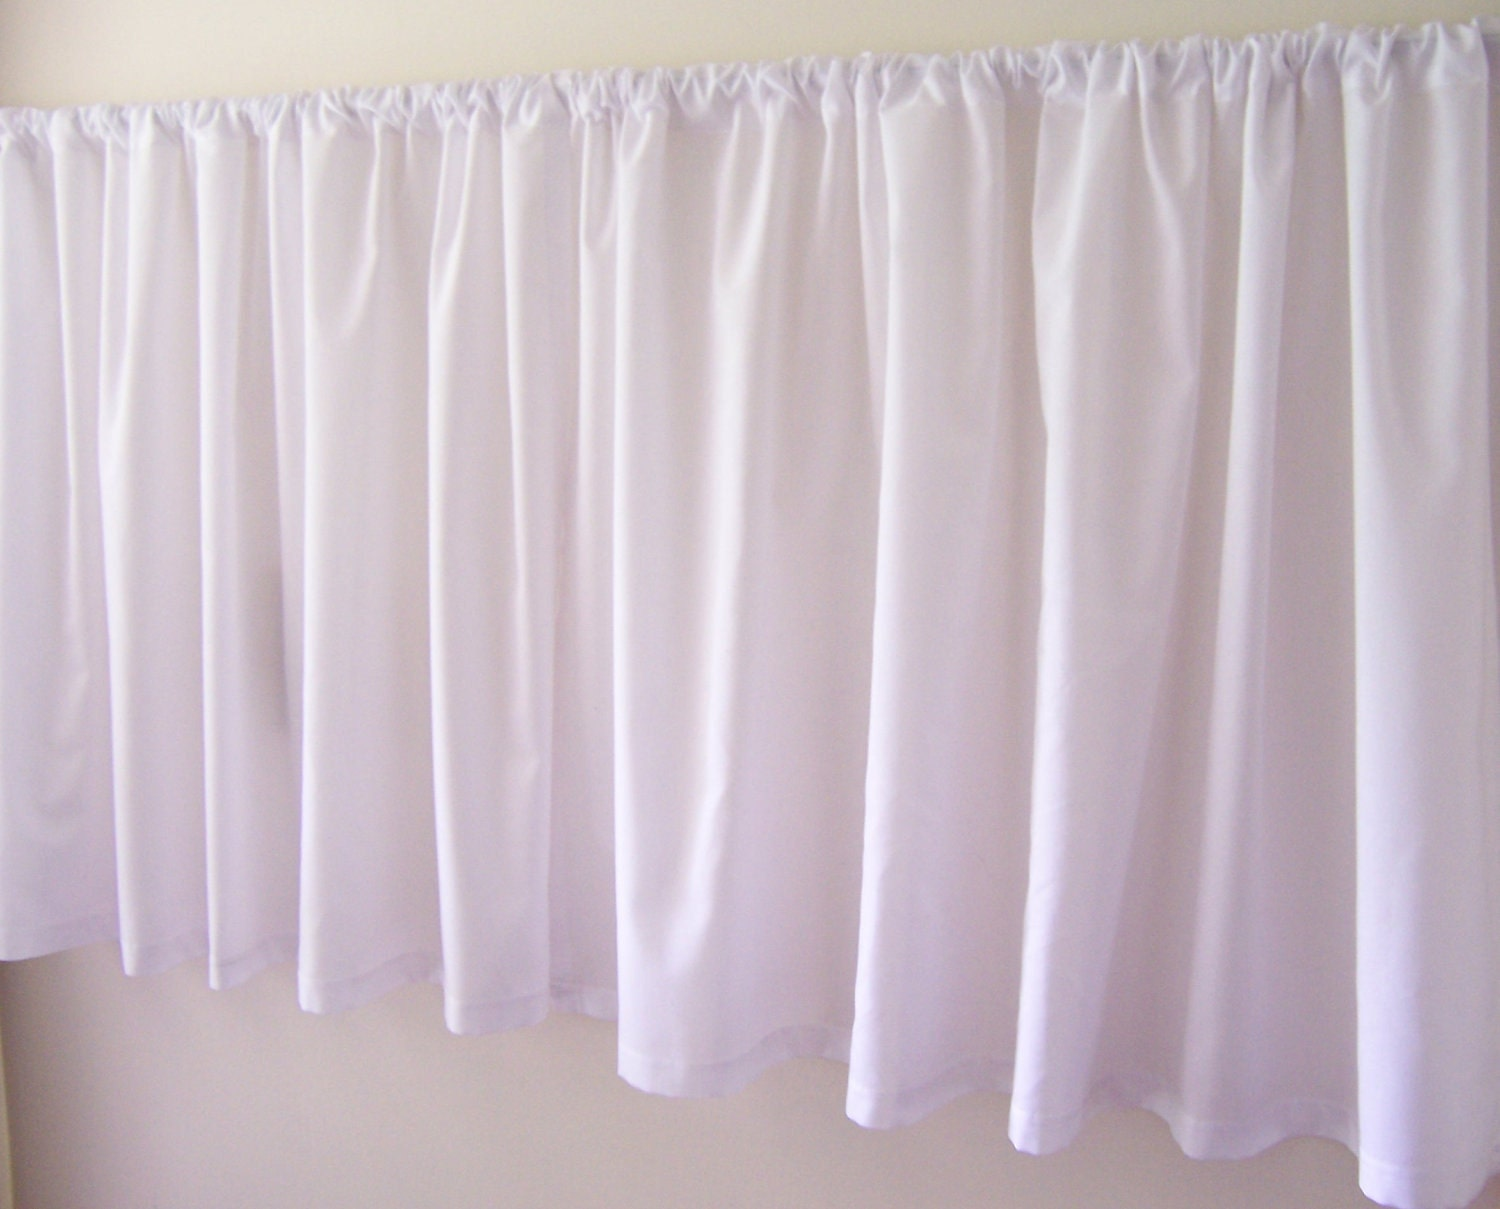 Cafe Curtains White Plain by treadlesandpedals on Etsy